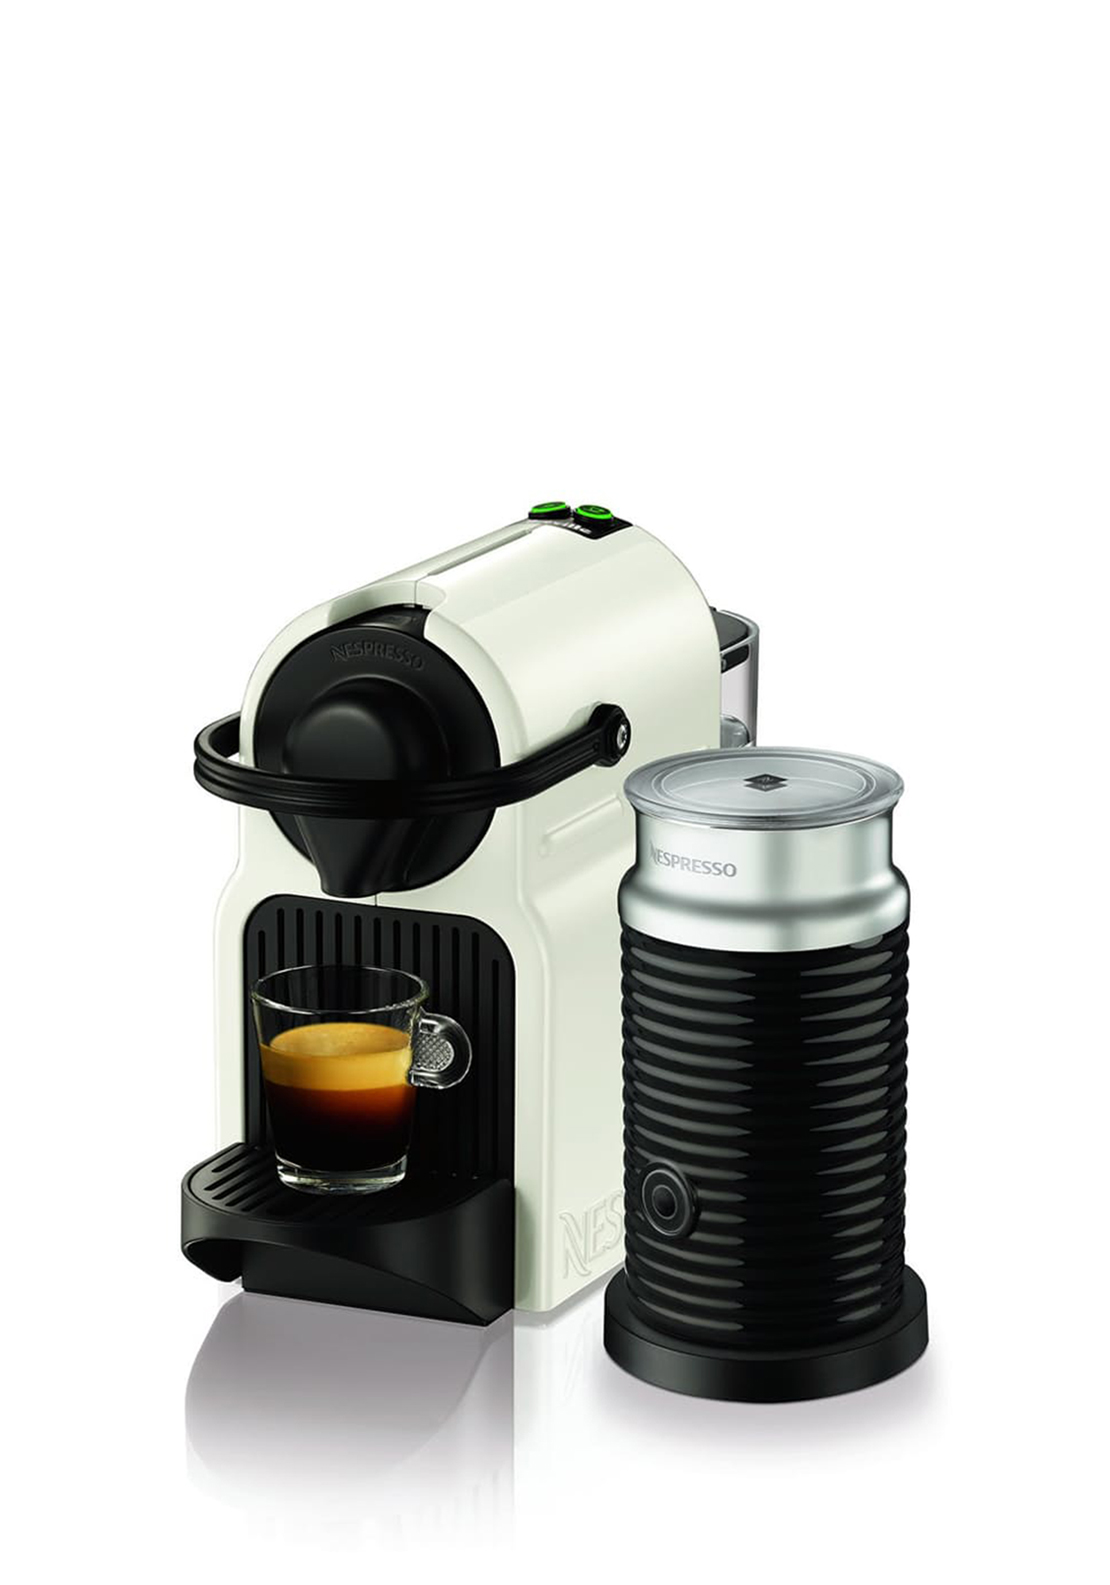 Nespresso Inissia & Aeroccino3 Krups Coffee Machine, White